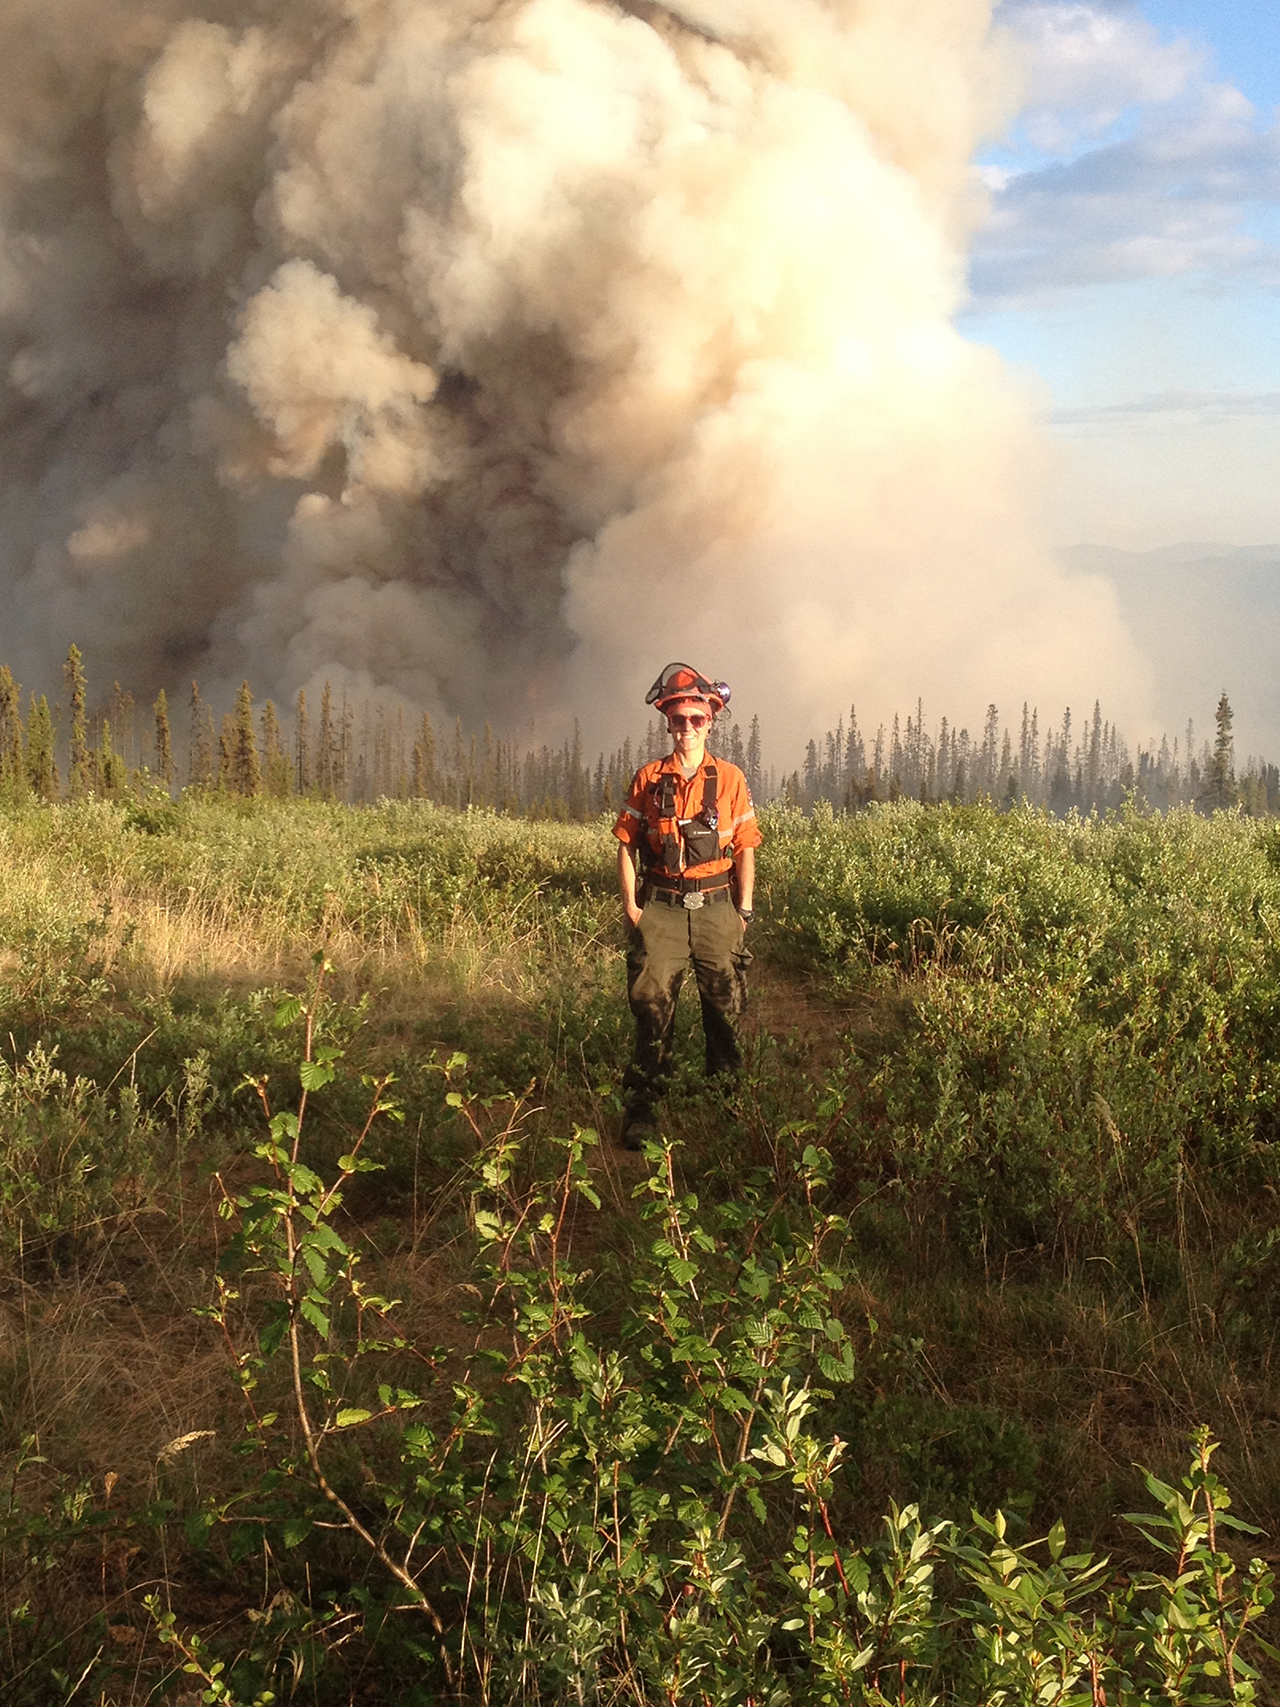 Julie Stankevicius stands in field in firefighting gear as smoke goes up behind her